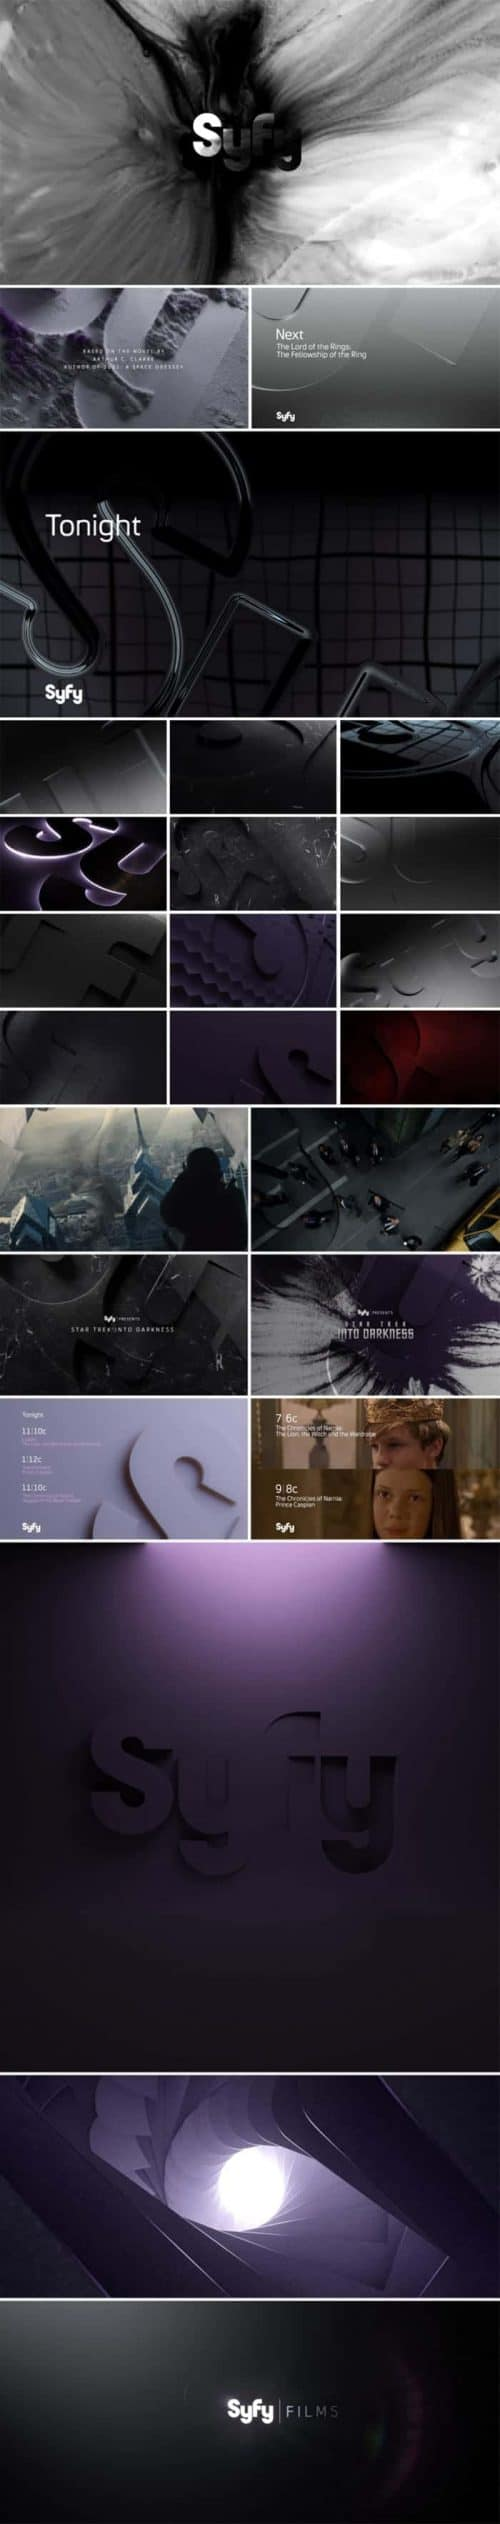 SYFY Identity – Identity and Channel Branding Frames